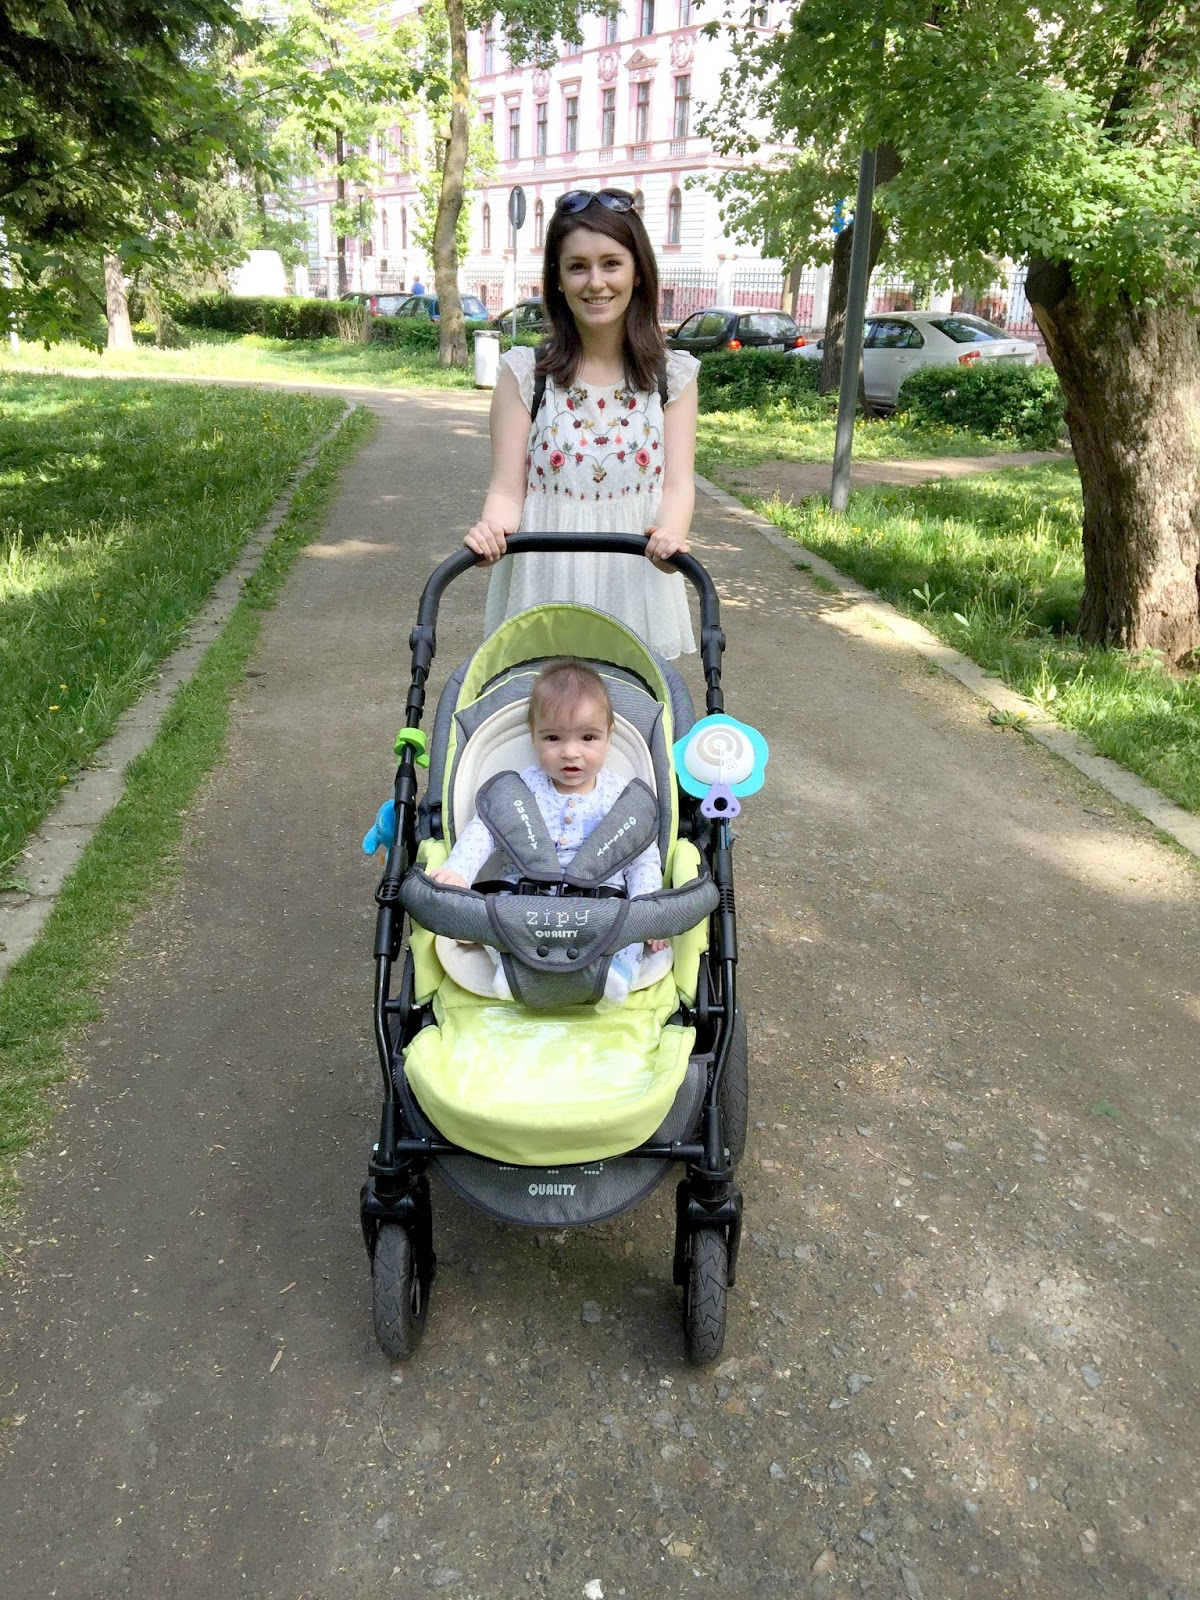 mom wearing embroidered blouse with baby in stroller